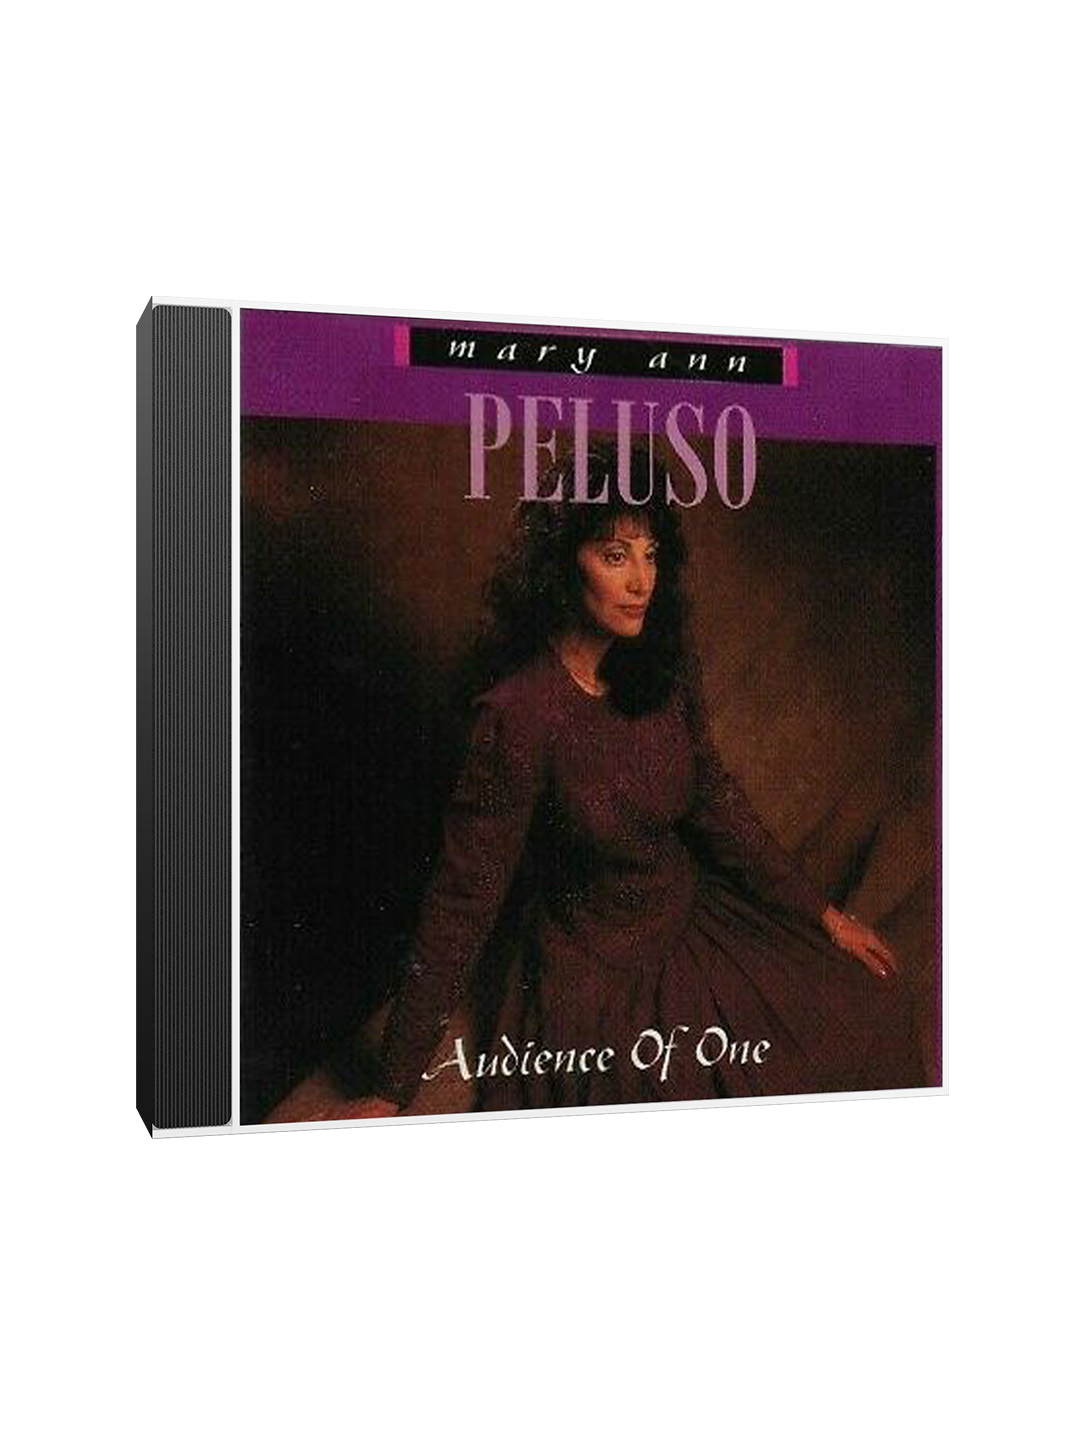 Audience of One CD Offer